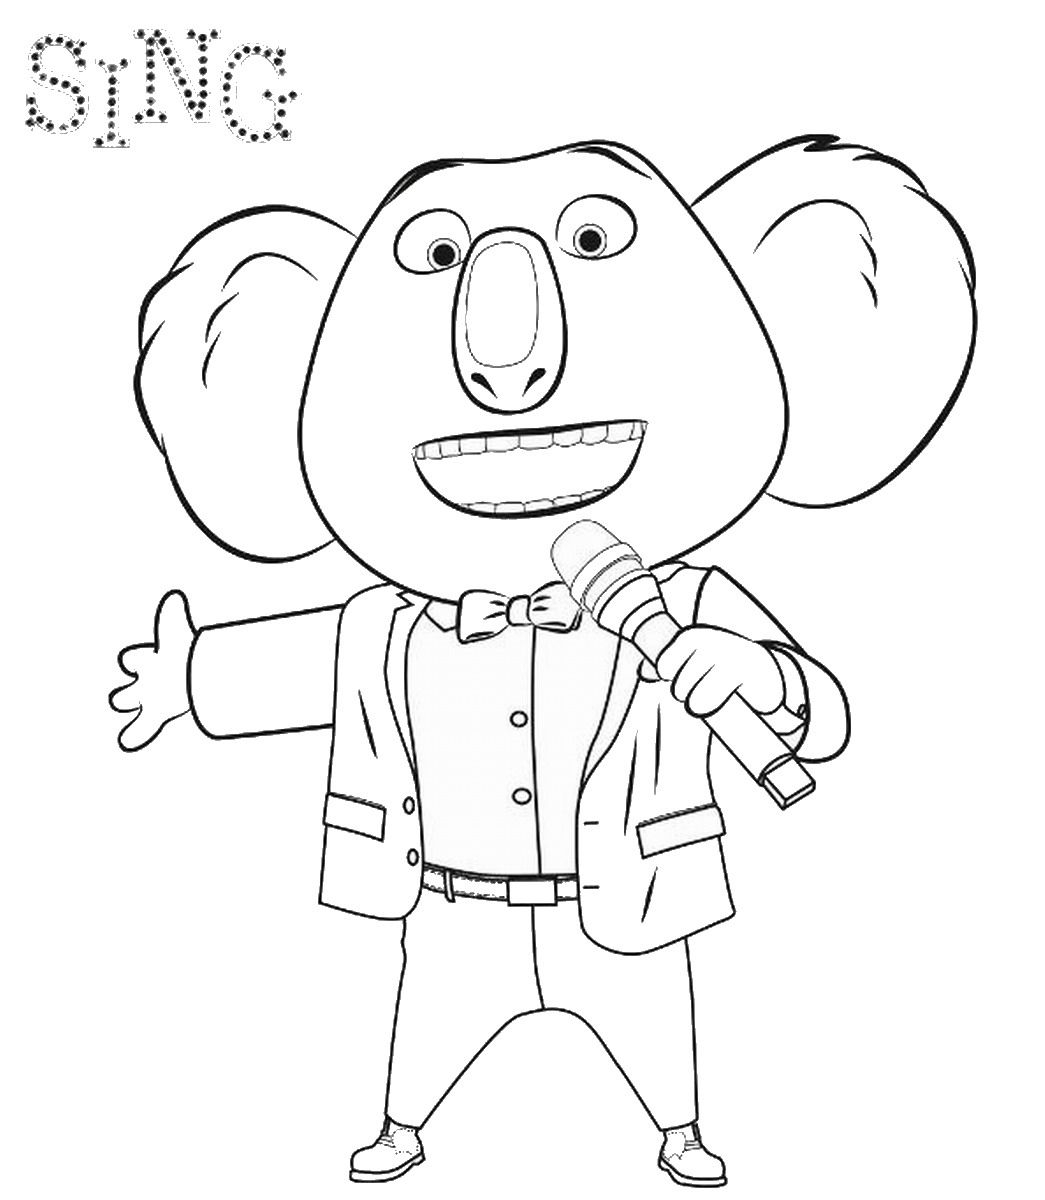 Sing movie coloring pages music theme birthday party for Sing movie coloring pages